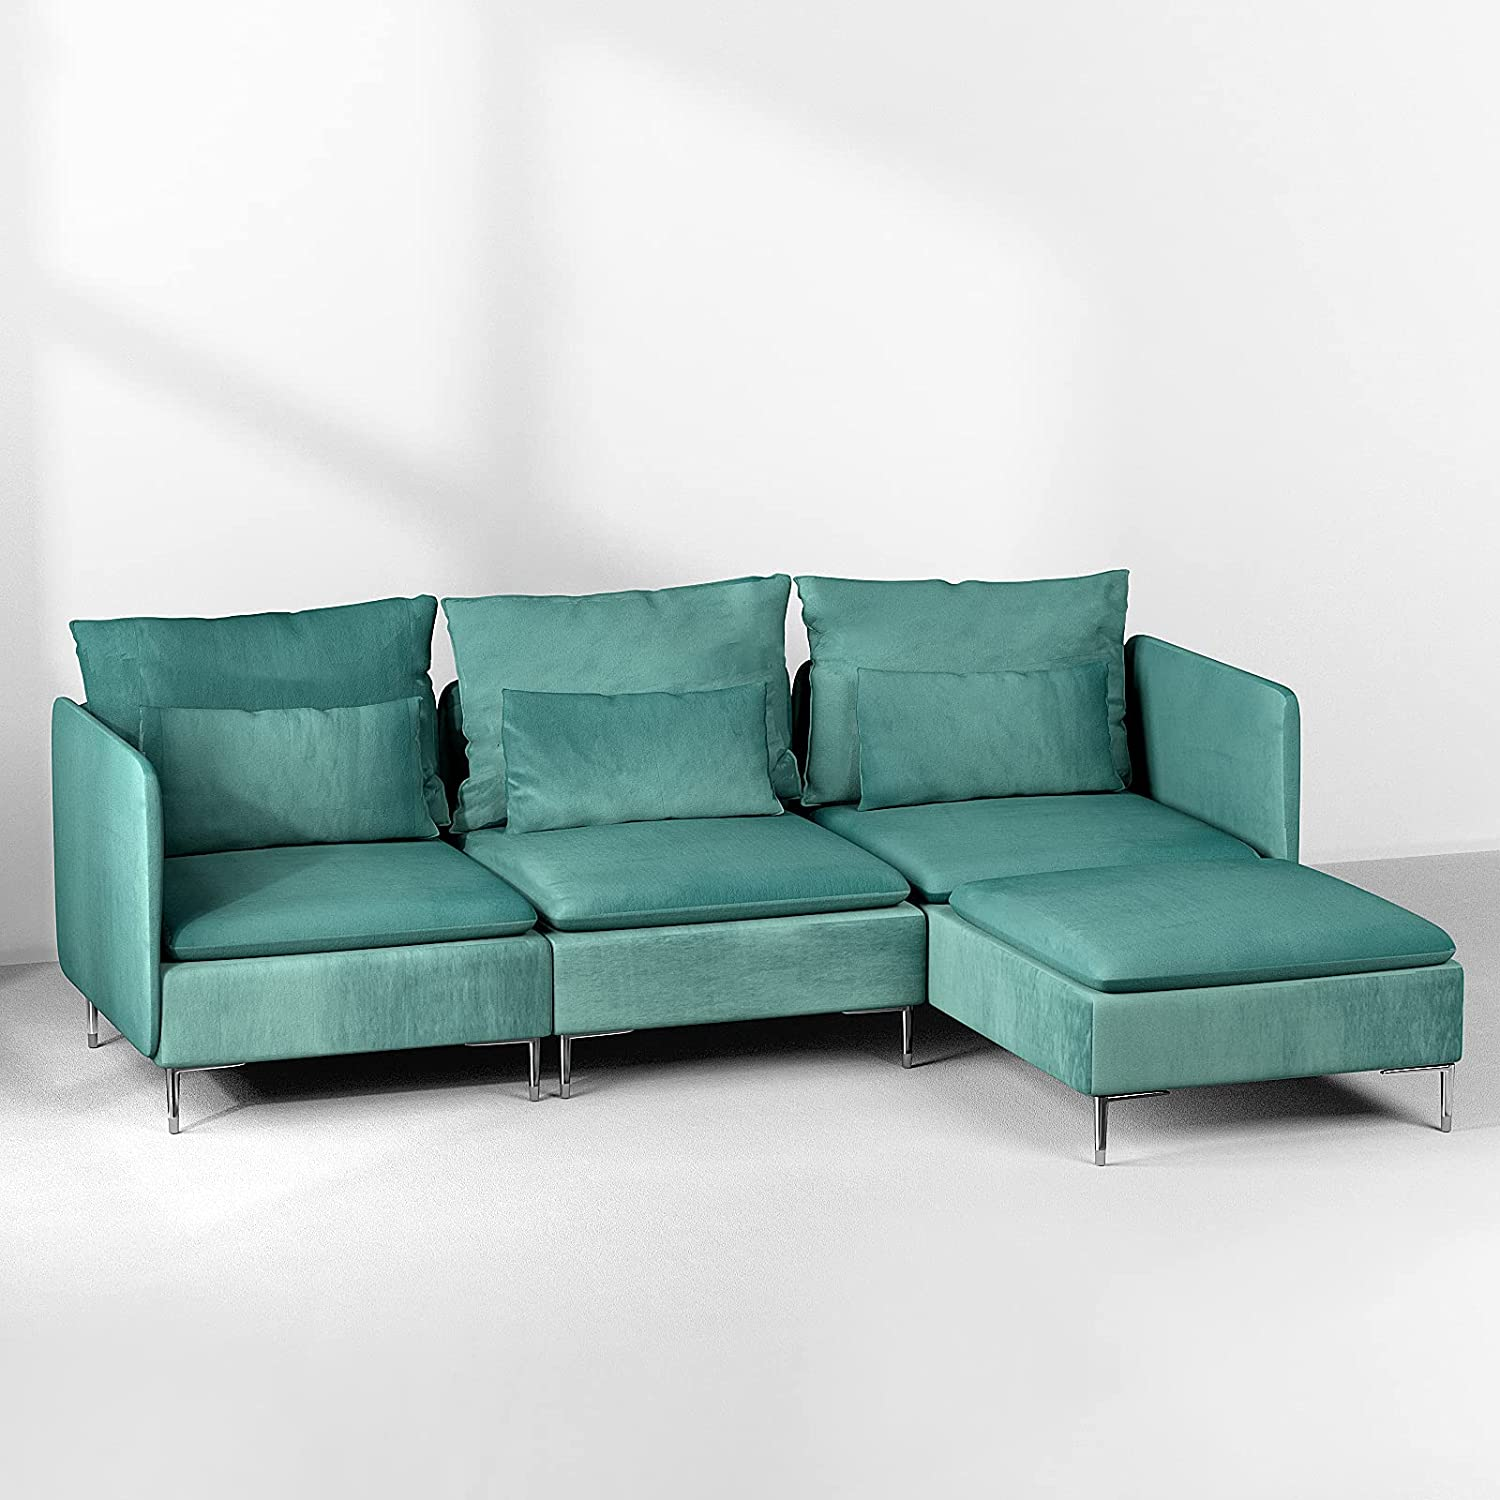 Convertible Sectional Sofa Couch Velvet L-Shaped Fabr with Miami Special Campaign Mall